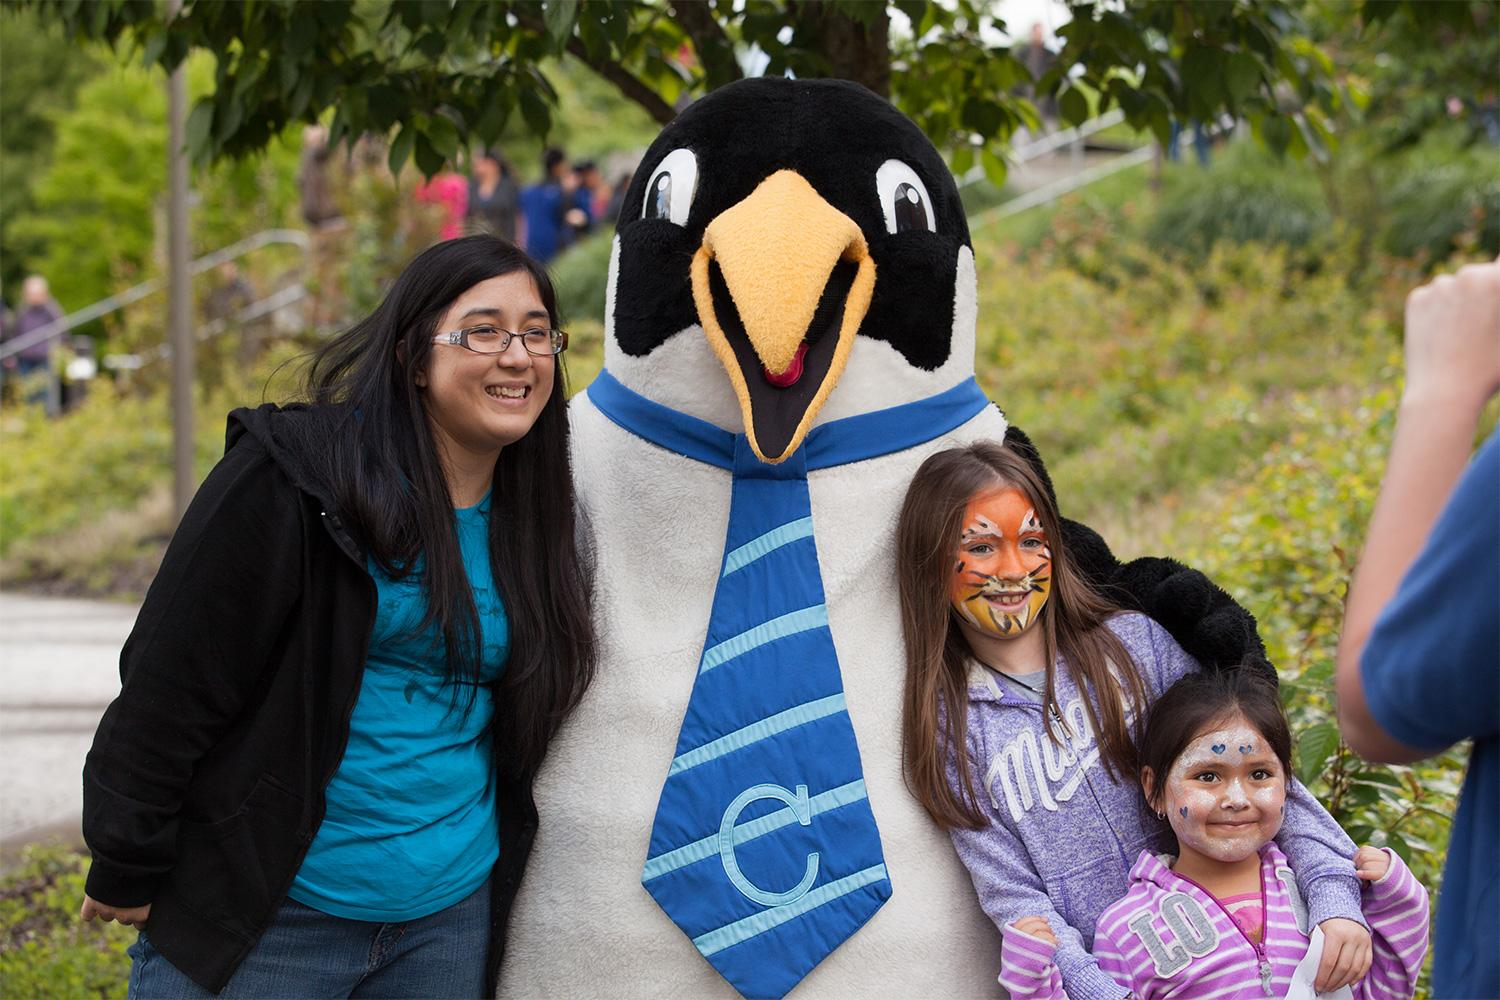 Visitors to the Latino Celebration poses with Oswald